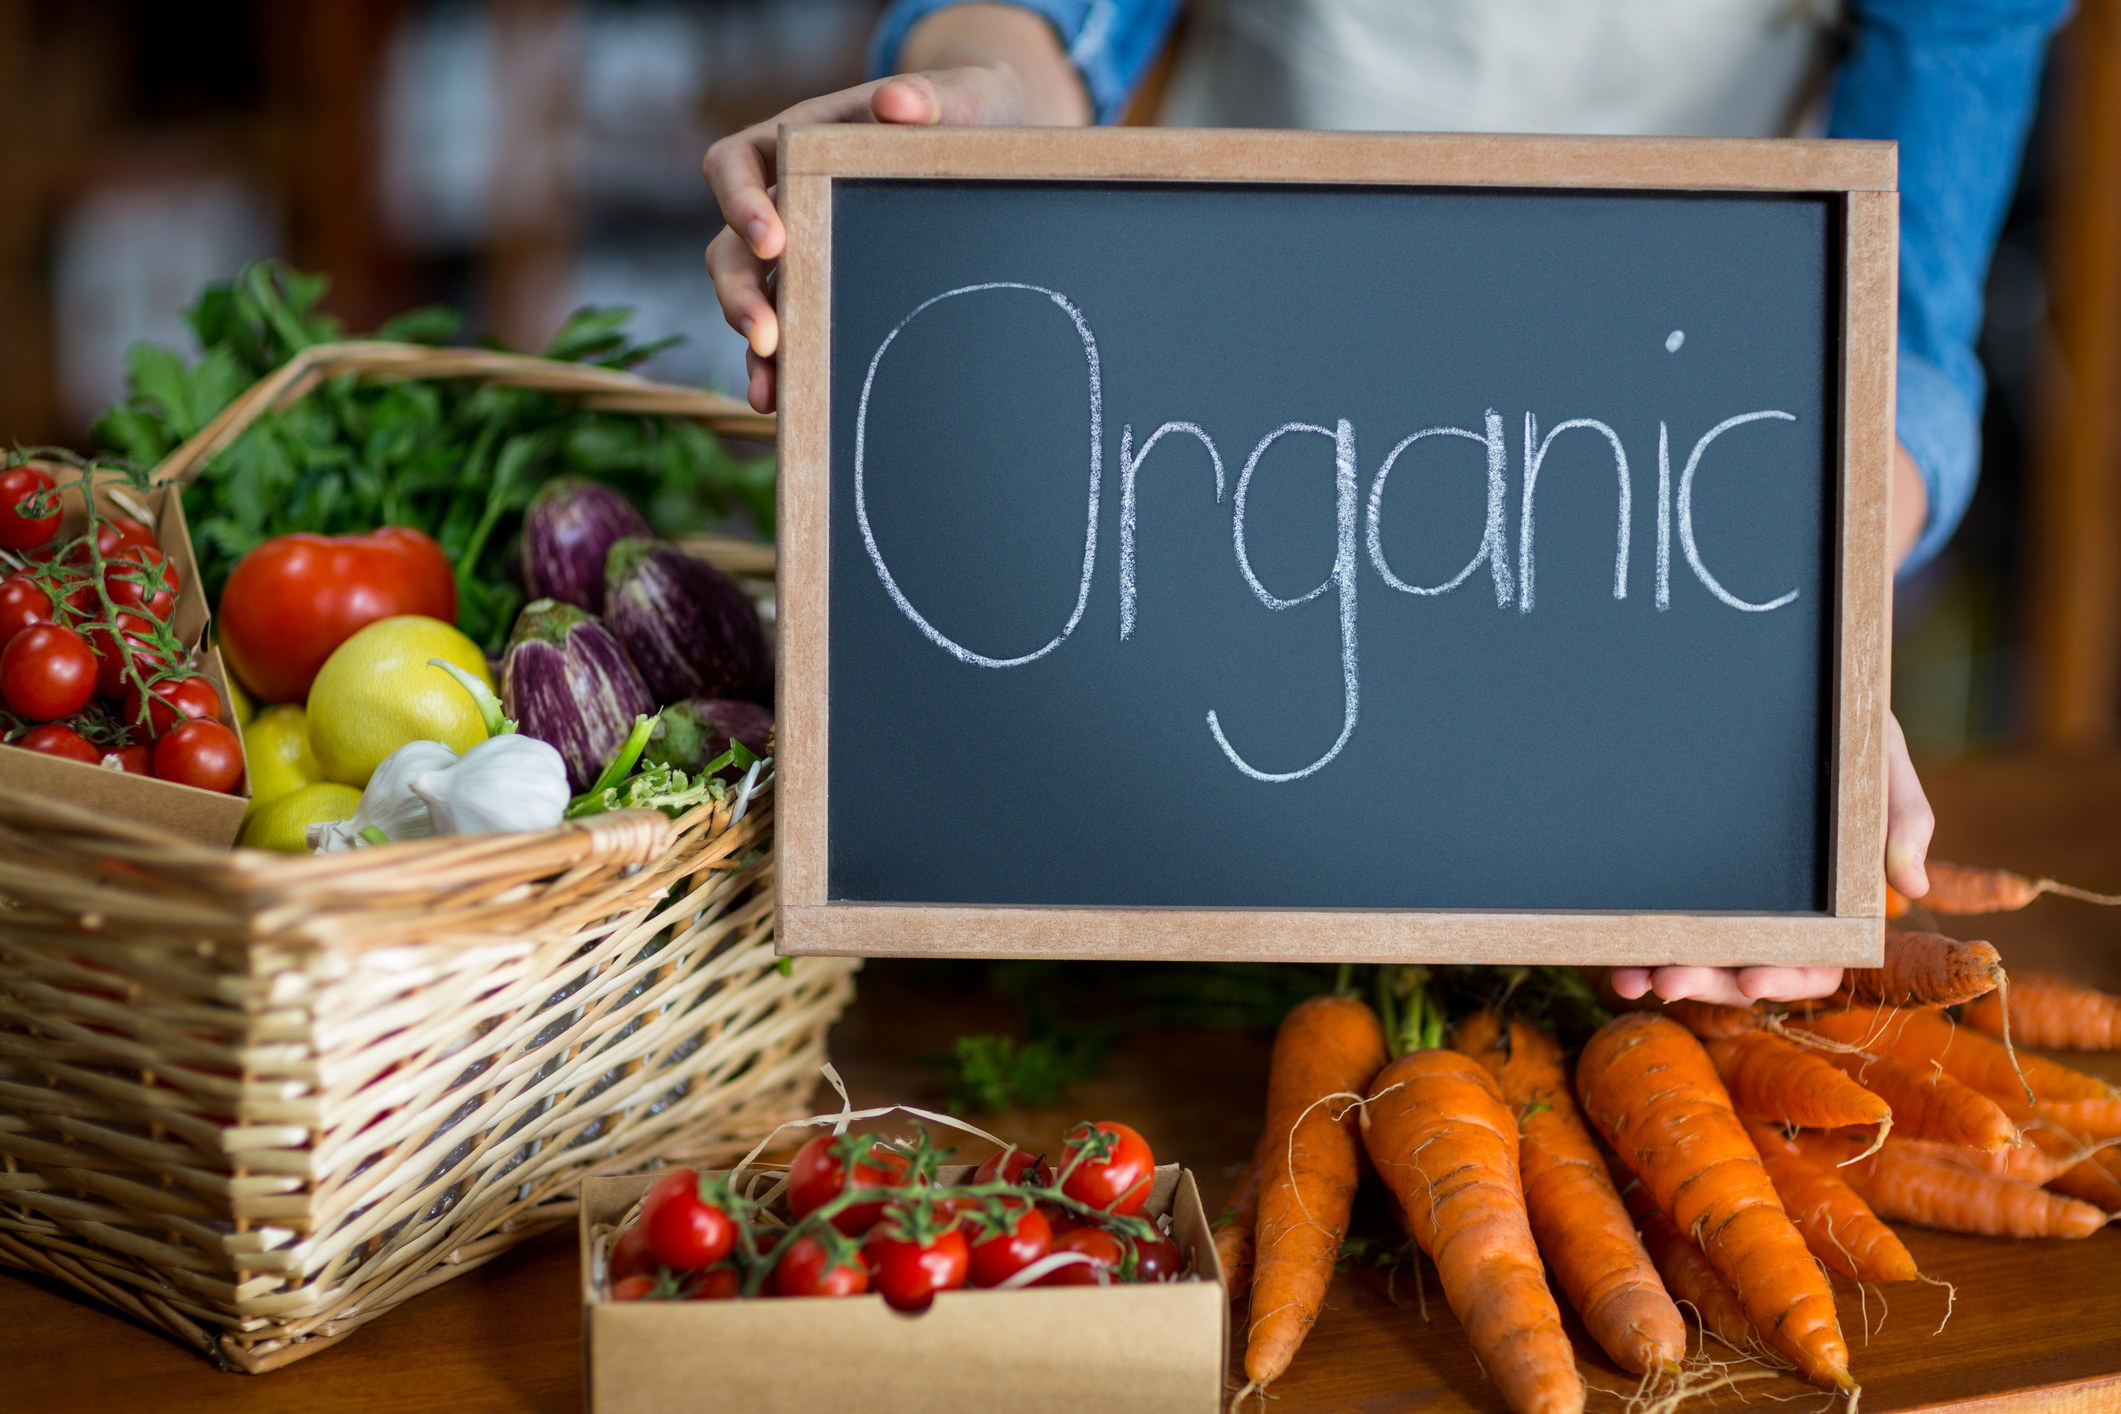 How the Natural and Organic Food Industry Grew to Be a $81.6 Billion Phenomenon